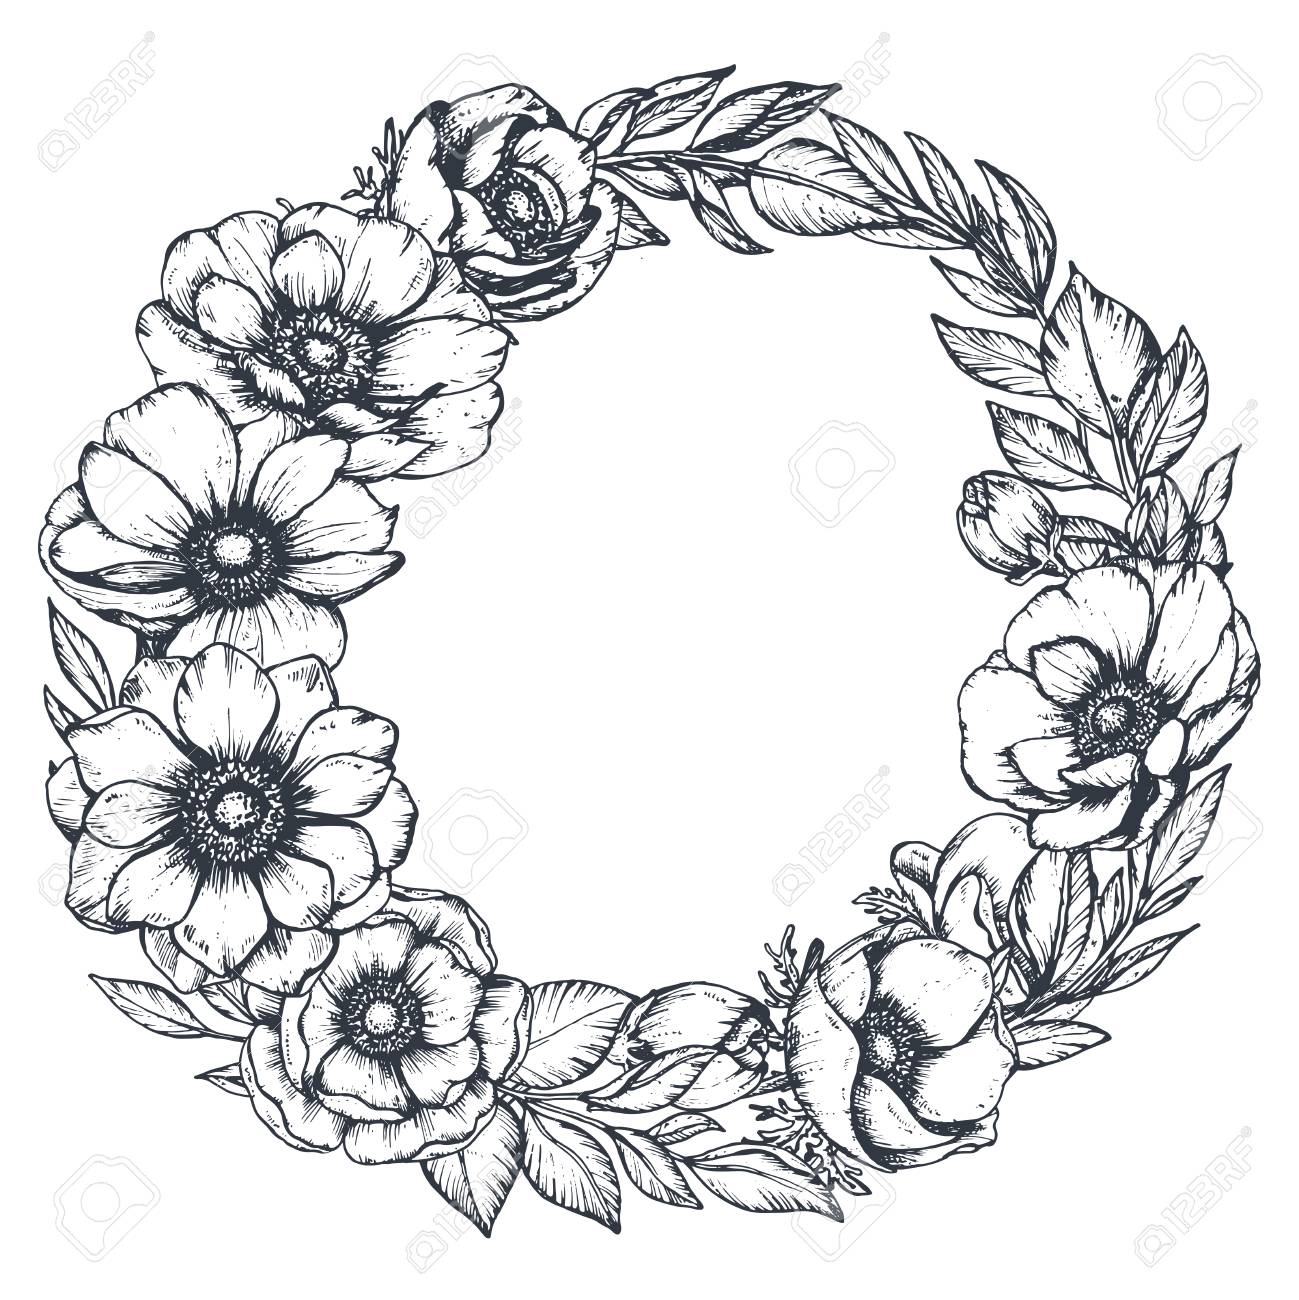 Vector black and white floral wreath of hand drawn anemone flowers.